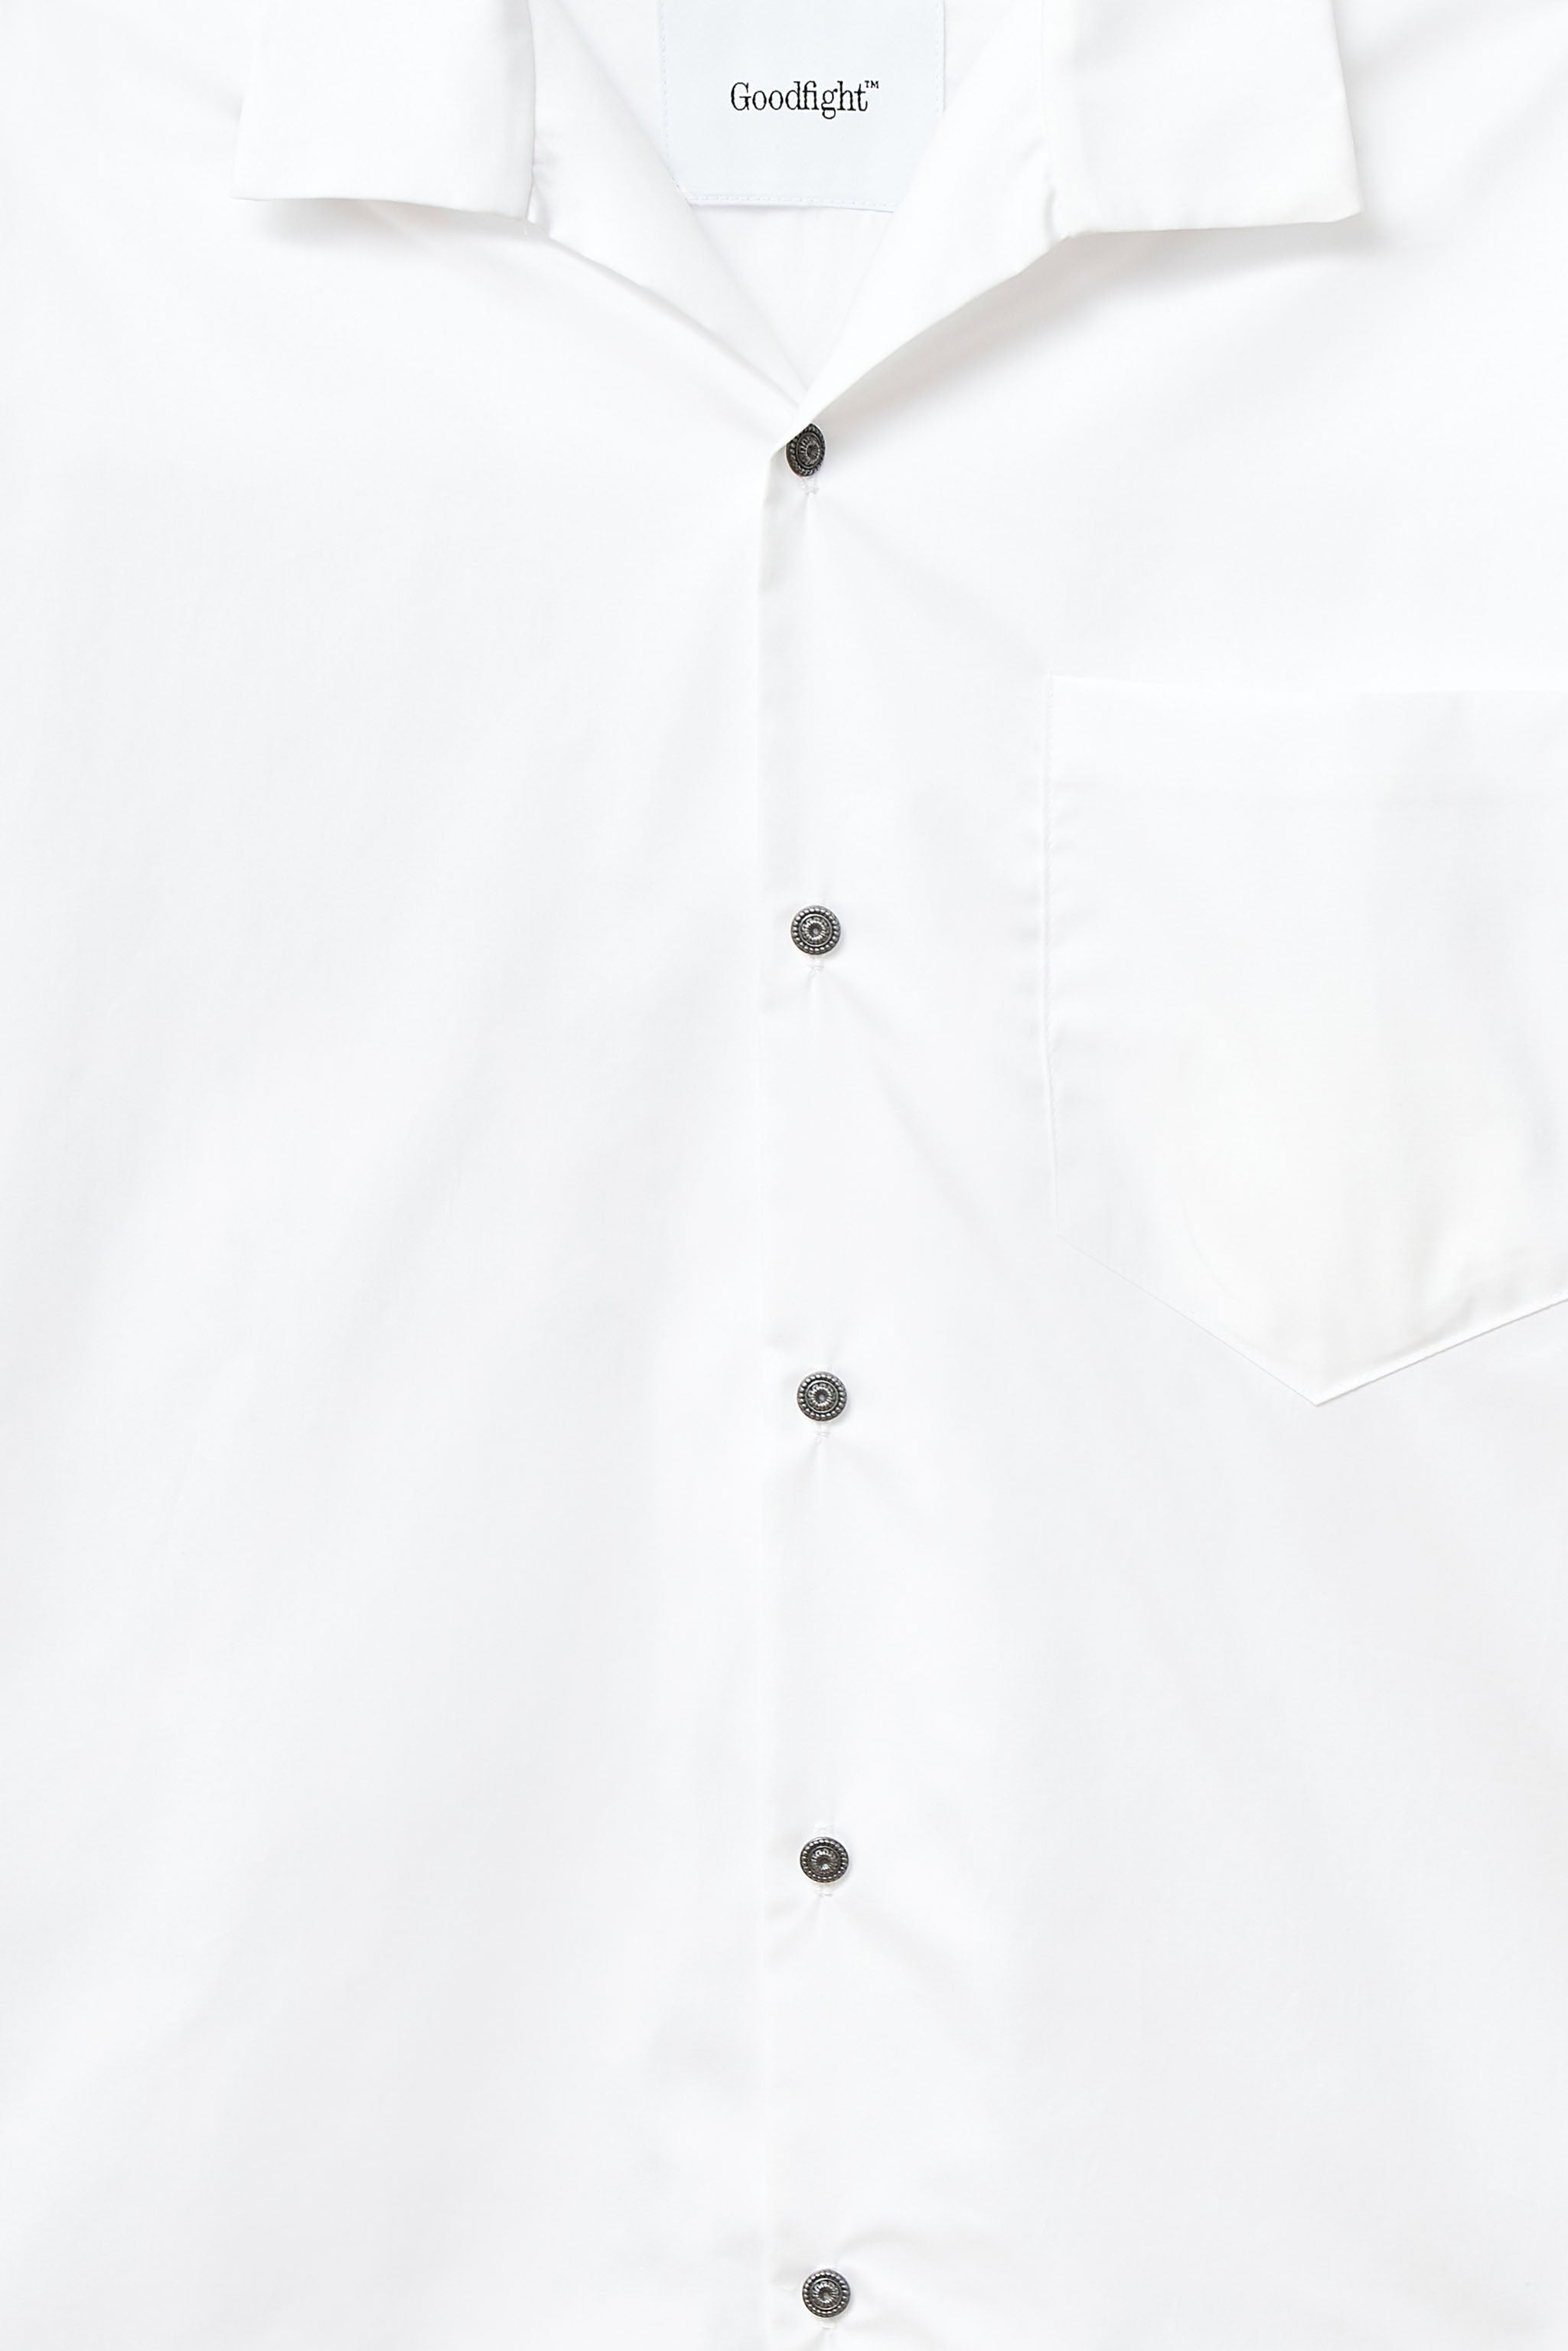 Goodfight Francoise Shirt White